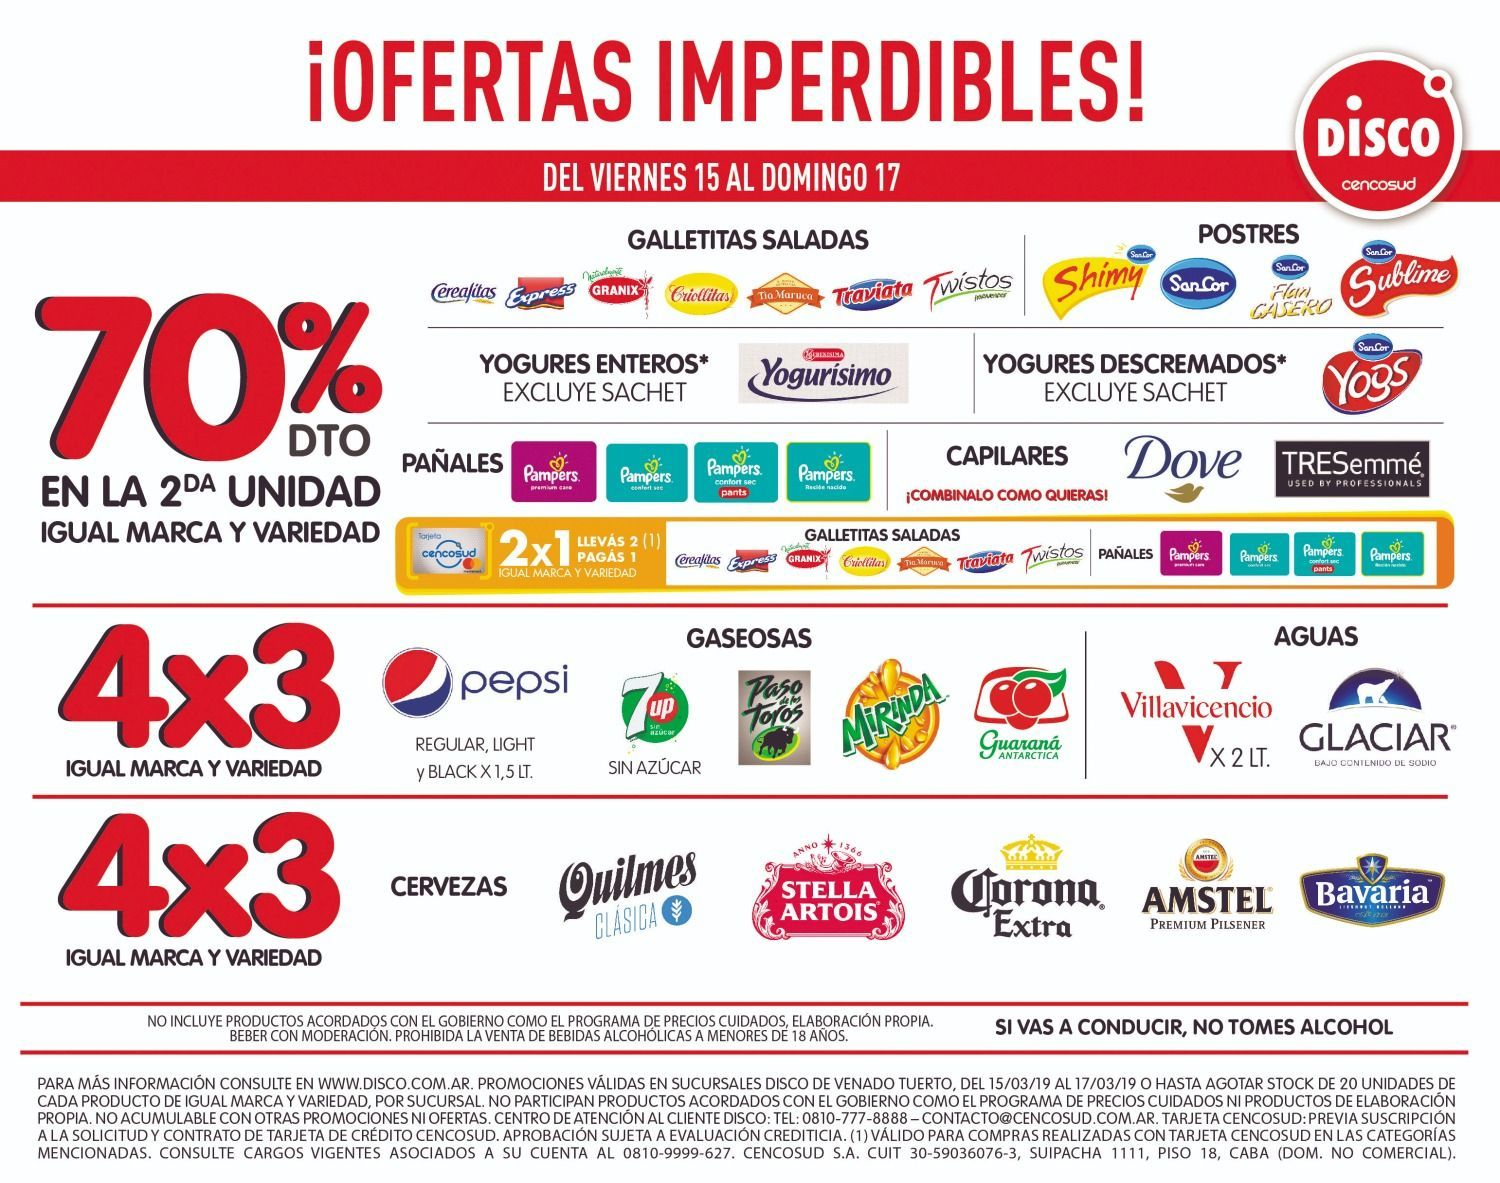 Ofertas imperdibles en Disco